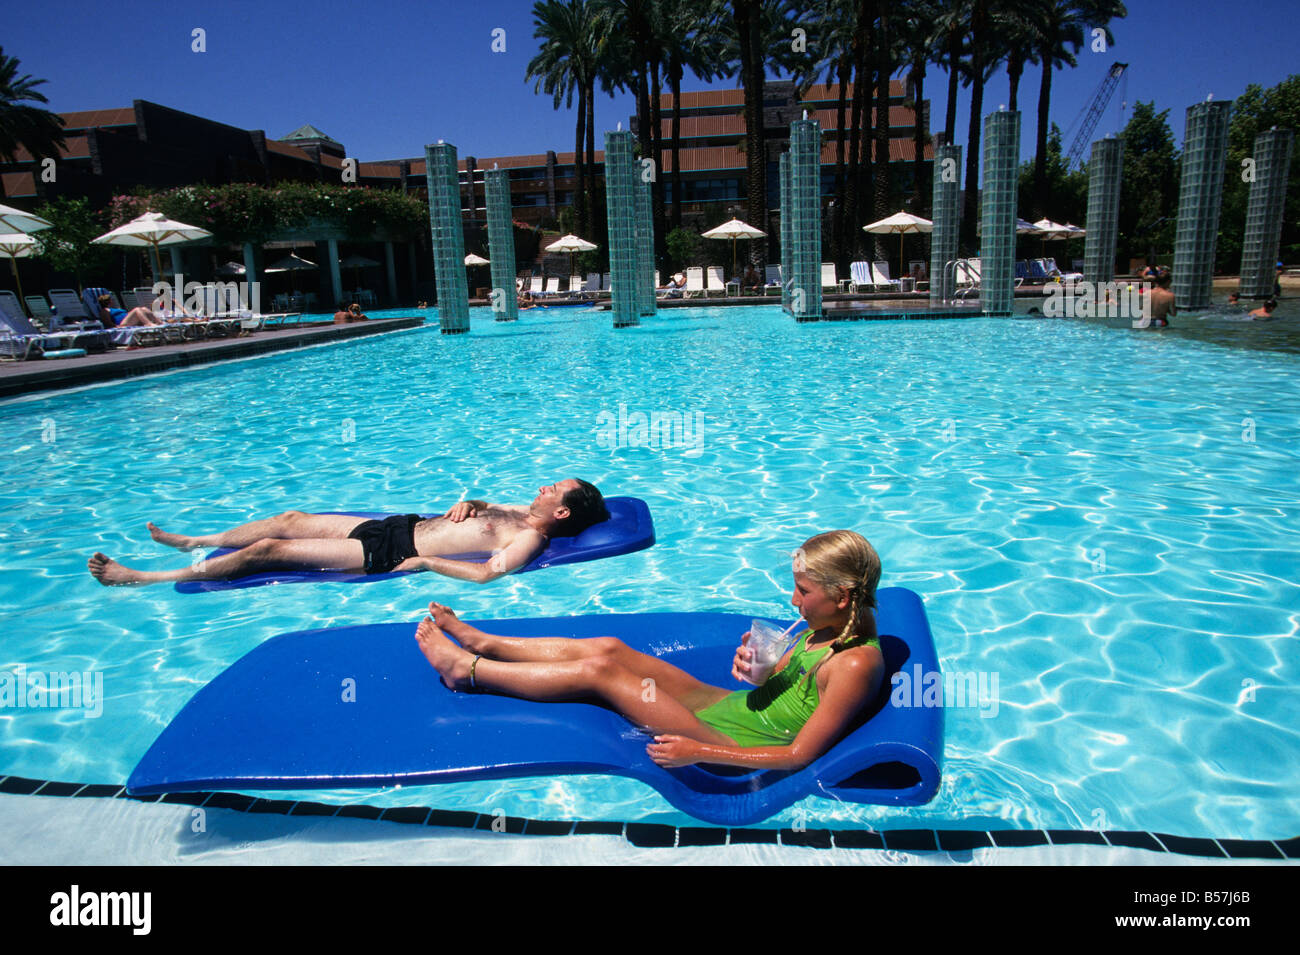 Hotel pool with people  People relax in the large swimming pool of a 5 star luxury hotel ...